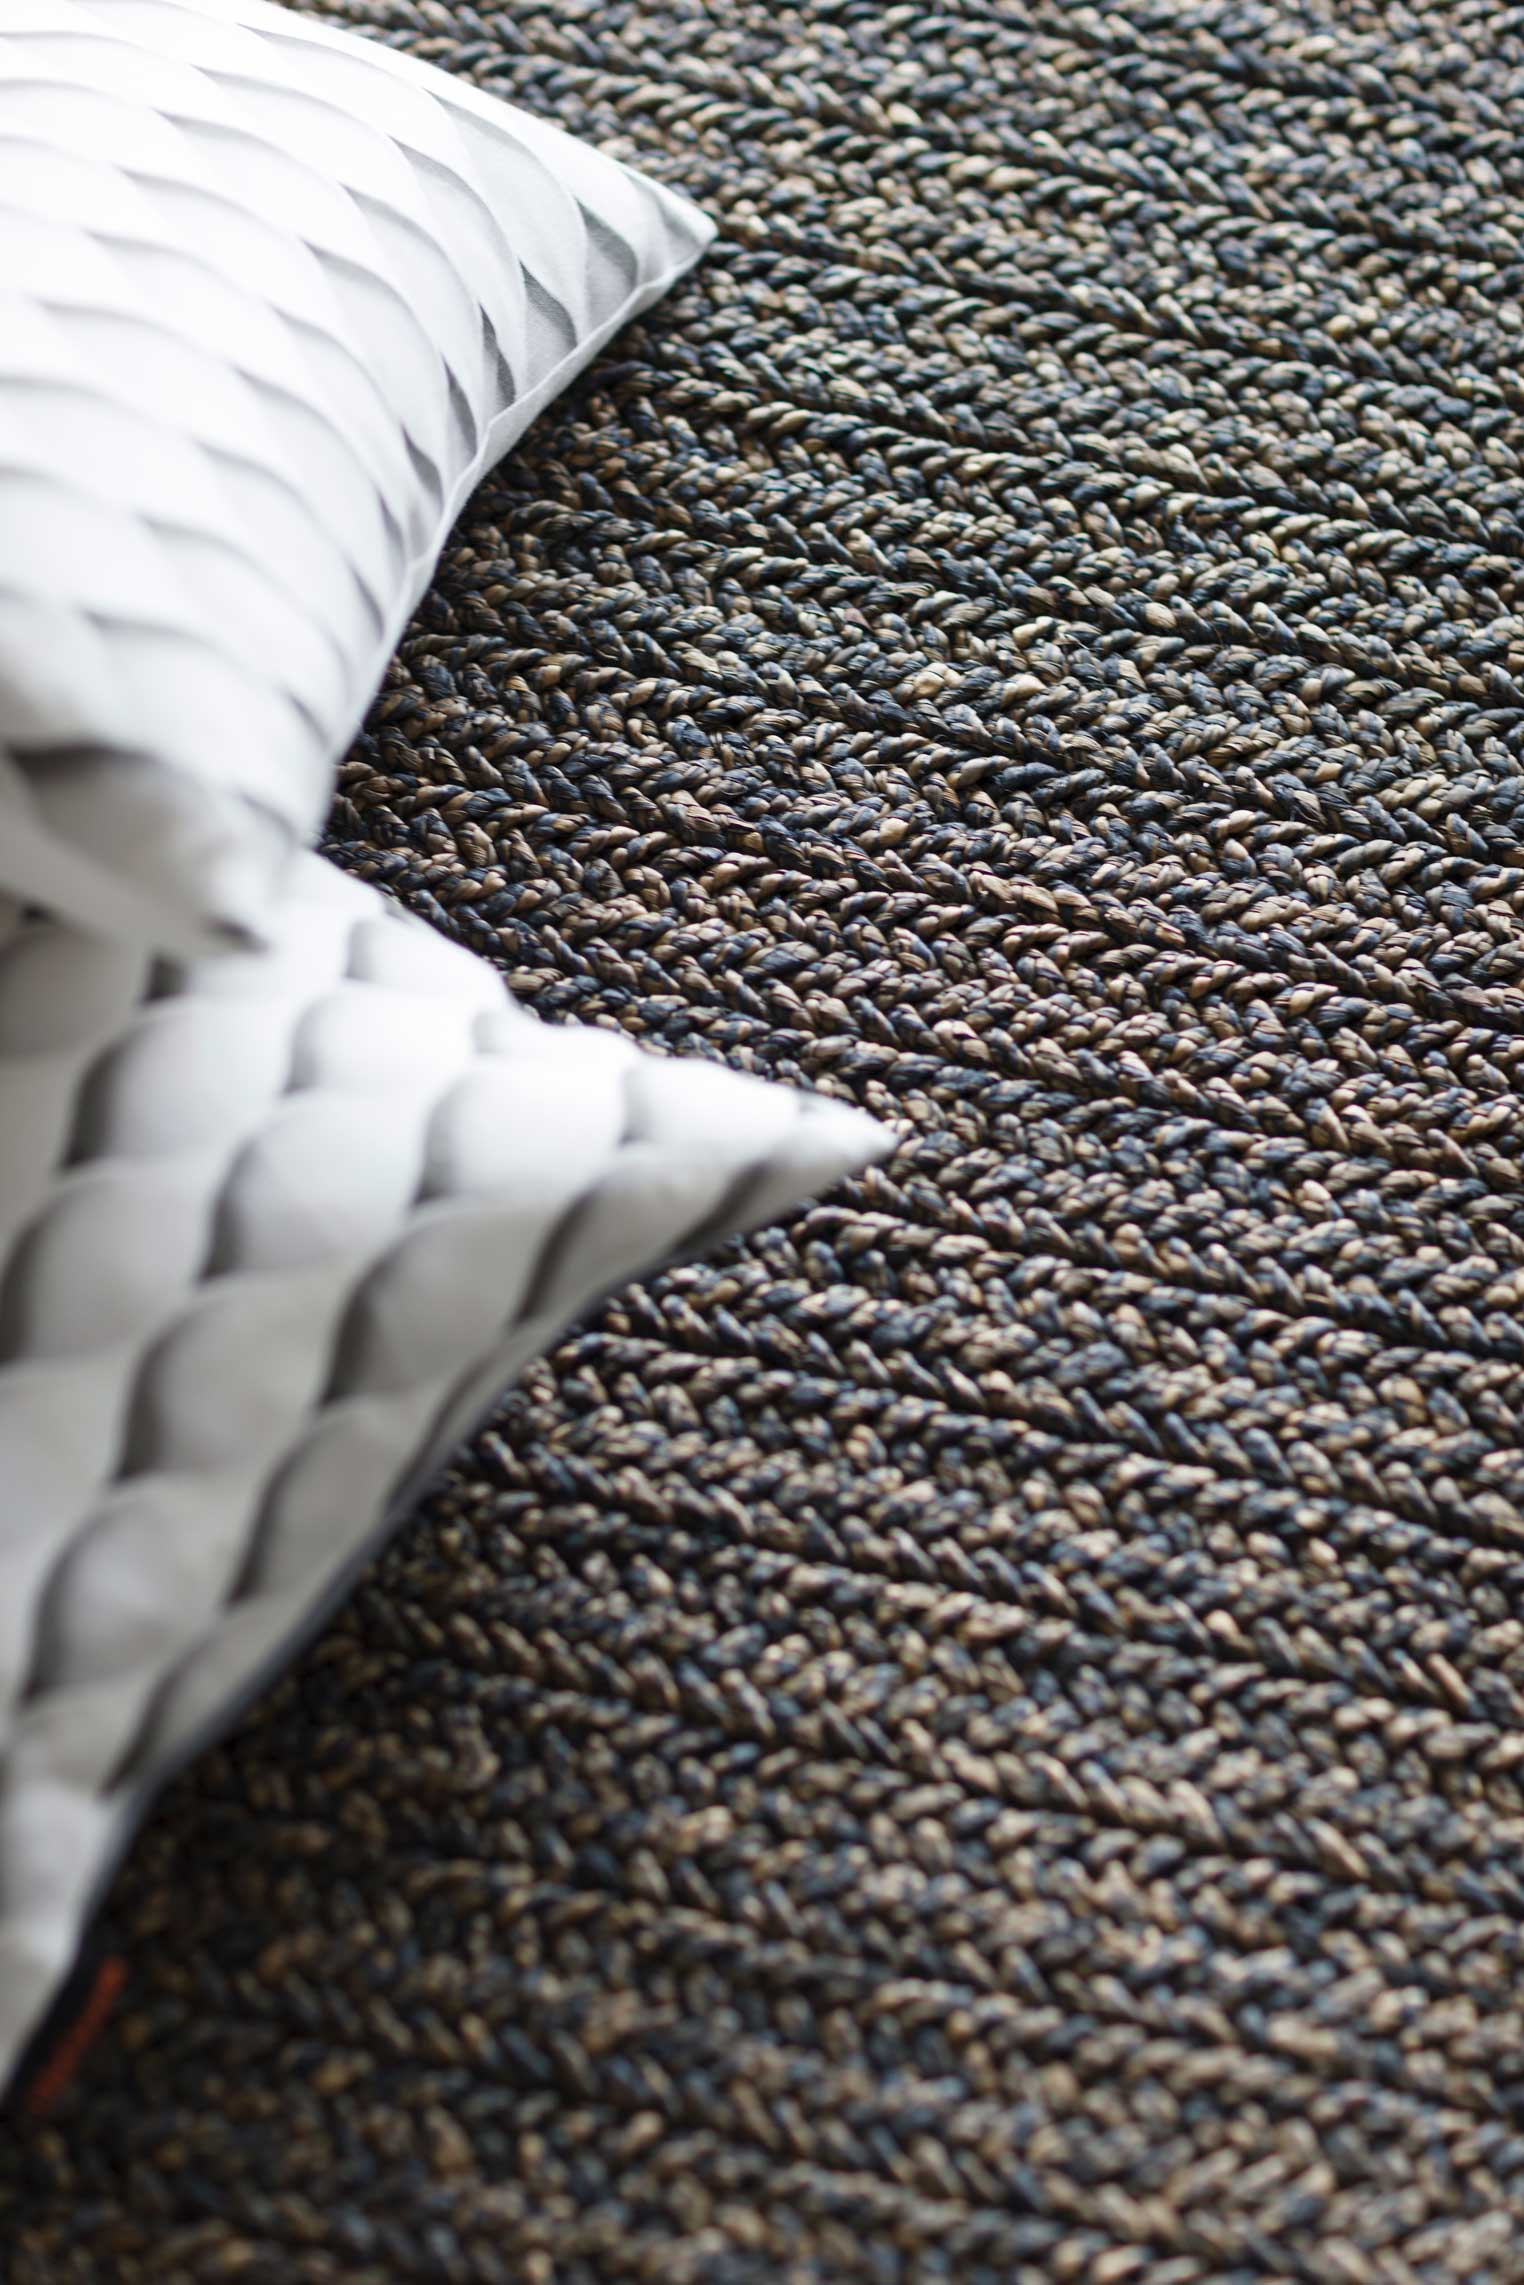 Water hyacinth can be woven into flooring